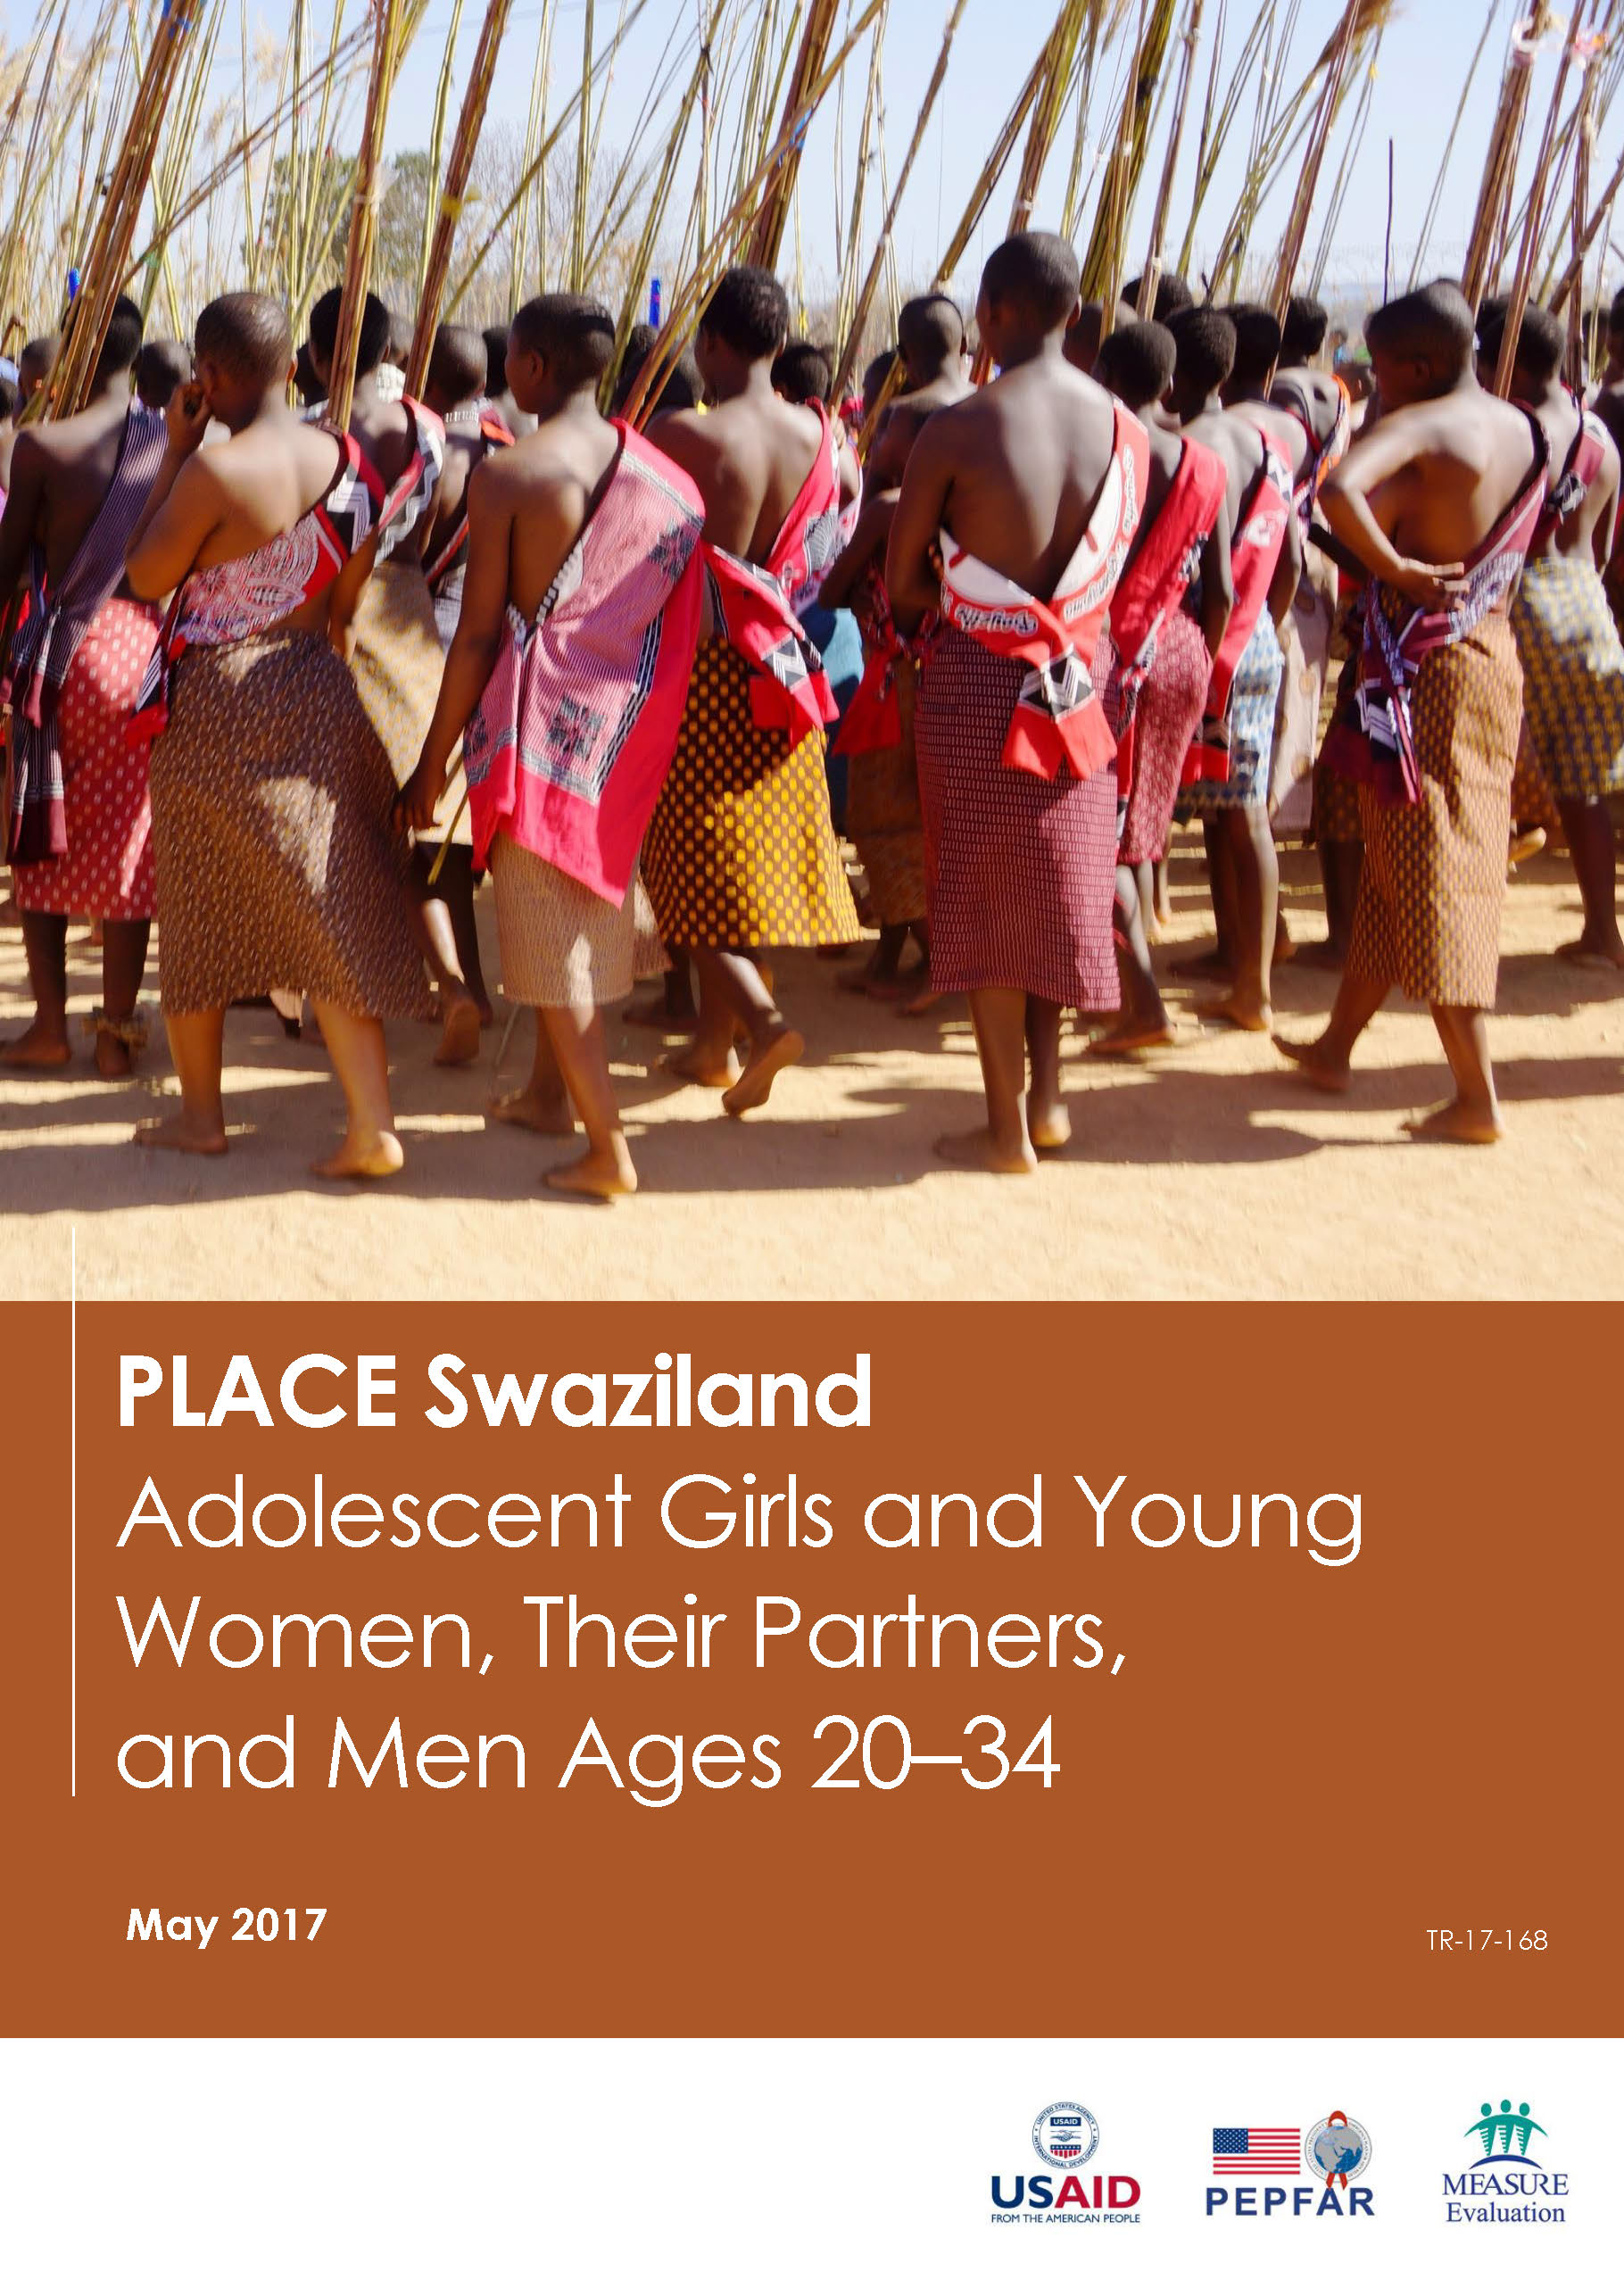 PLACE Swaziland Adolescent Girls and Young Women